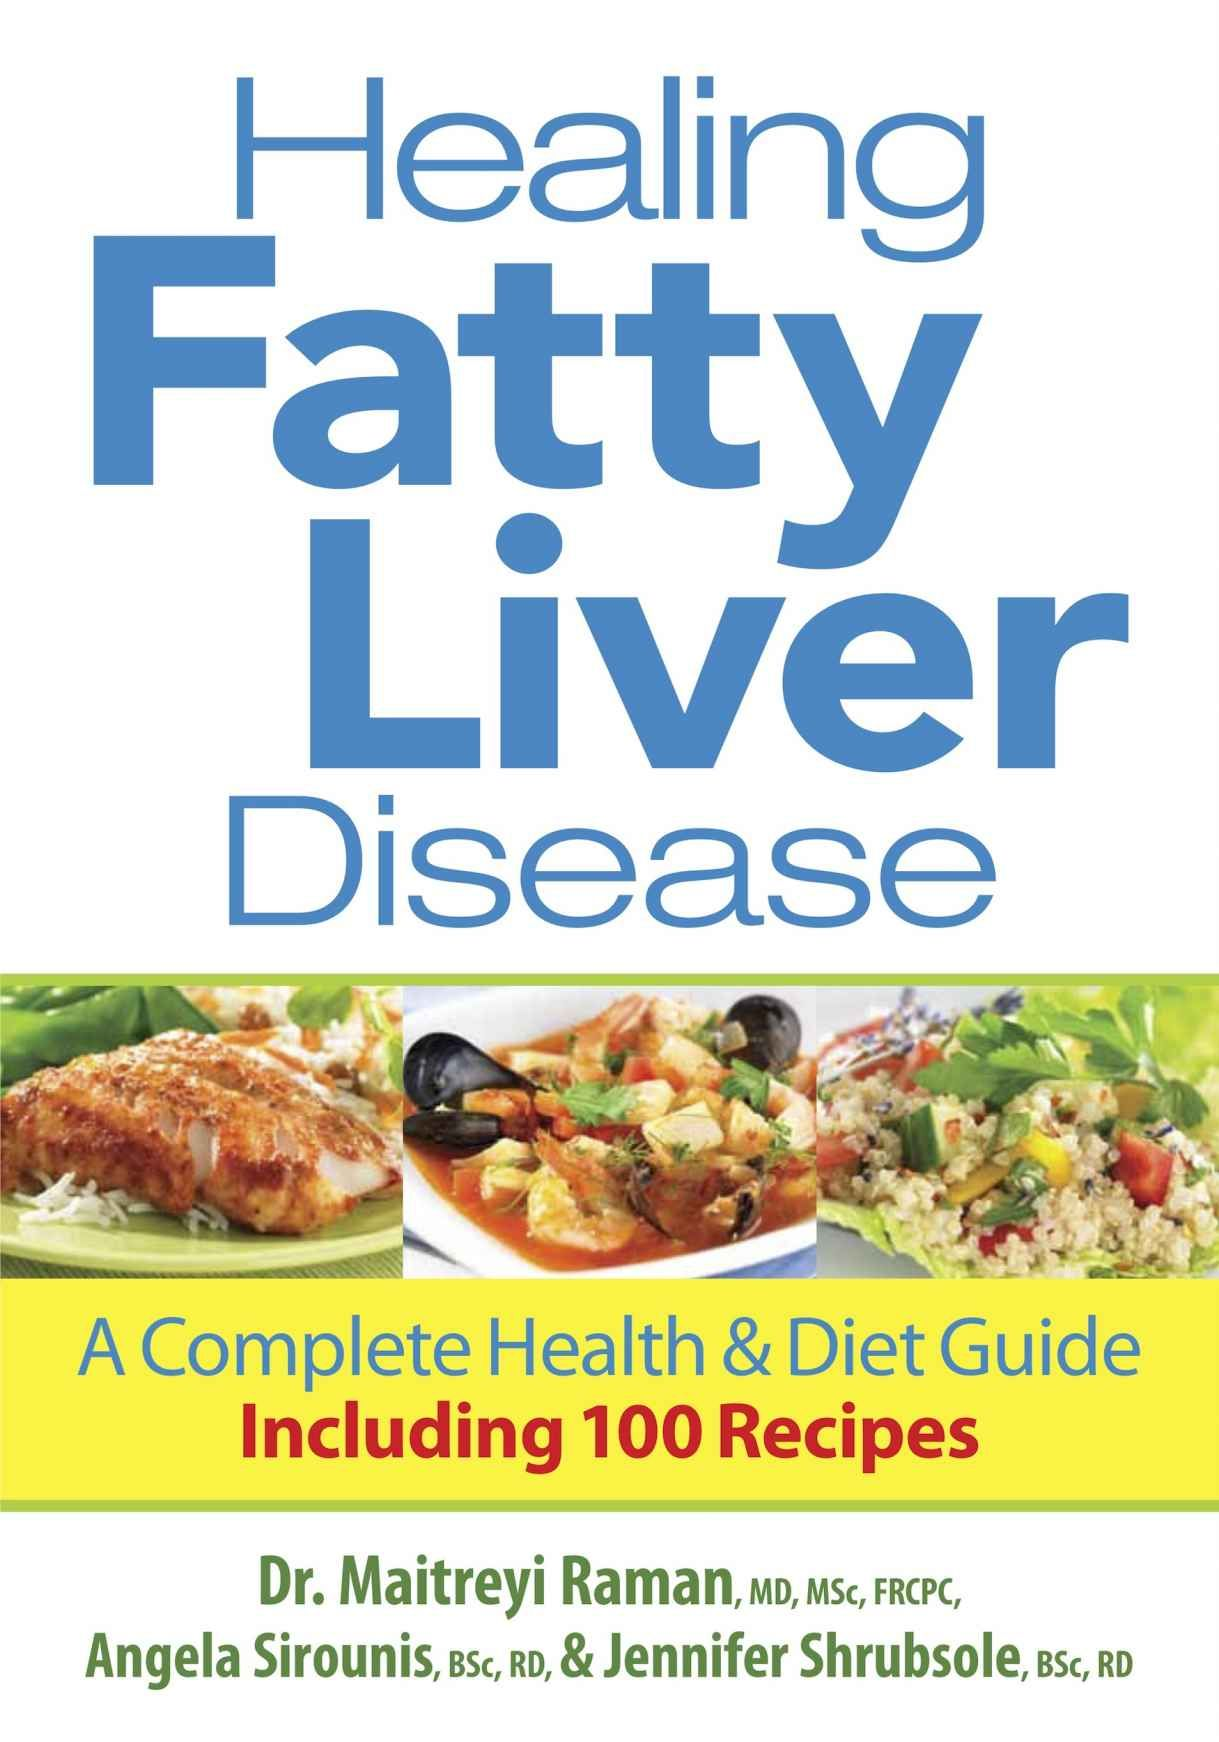 Healing fatty liver disease a complete health and diet guide healing fatty liver disease a complete health diet guide including 100 recipes book detail lockport public library forumfinder Choice Image